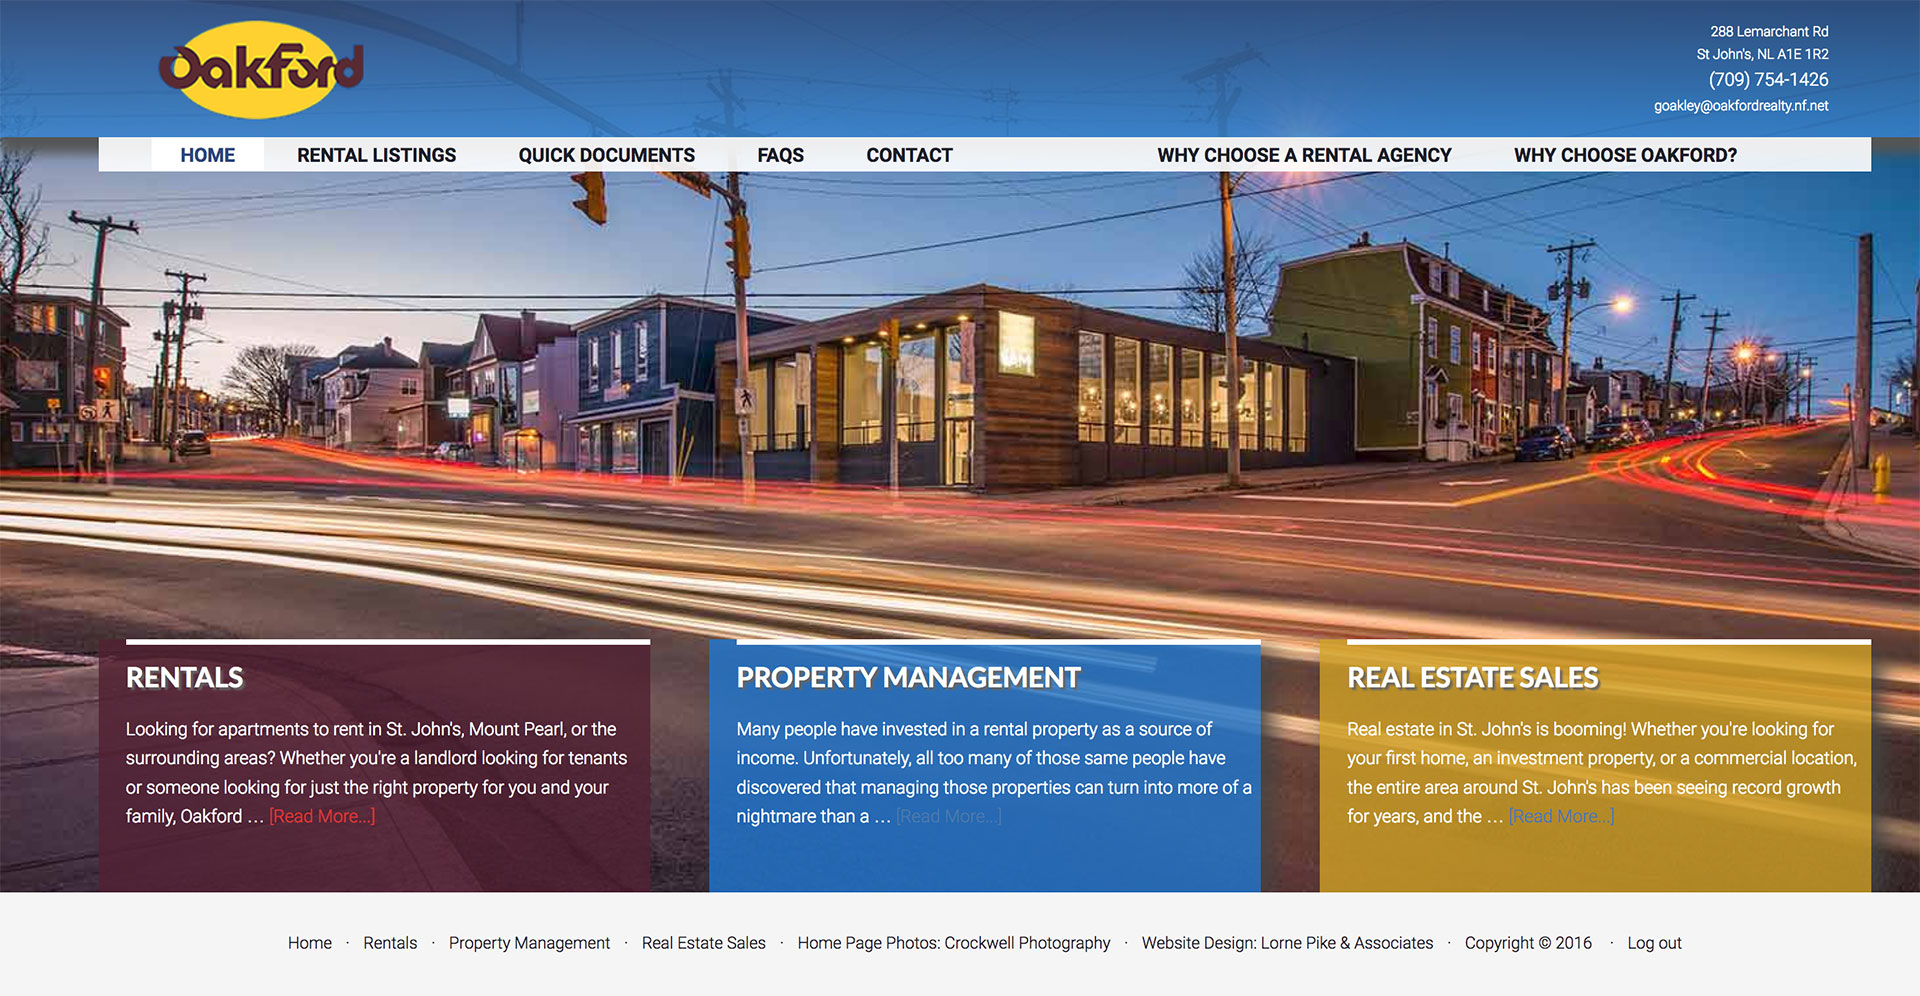 Lorne Pike & Associates in St. John's: When Oakford Realty decided it was time for their first website, they did it right with a website that features their property listings, easy sales inquiry forms, and easy service request forms for tenants.